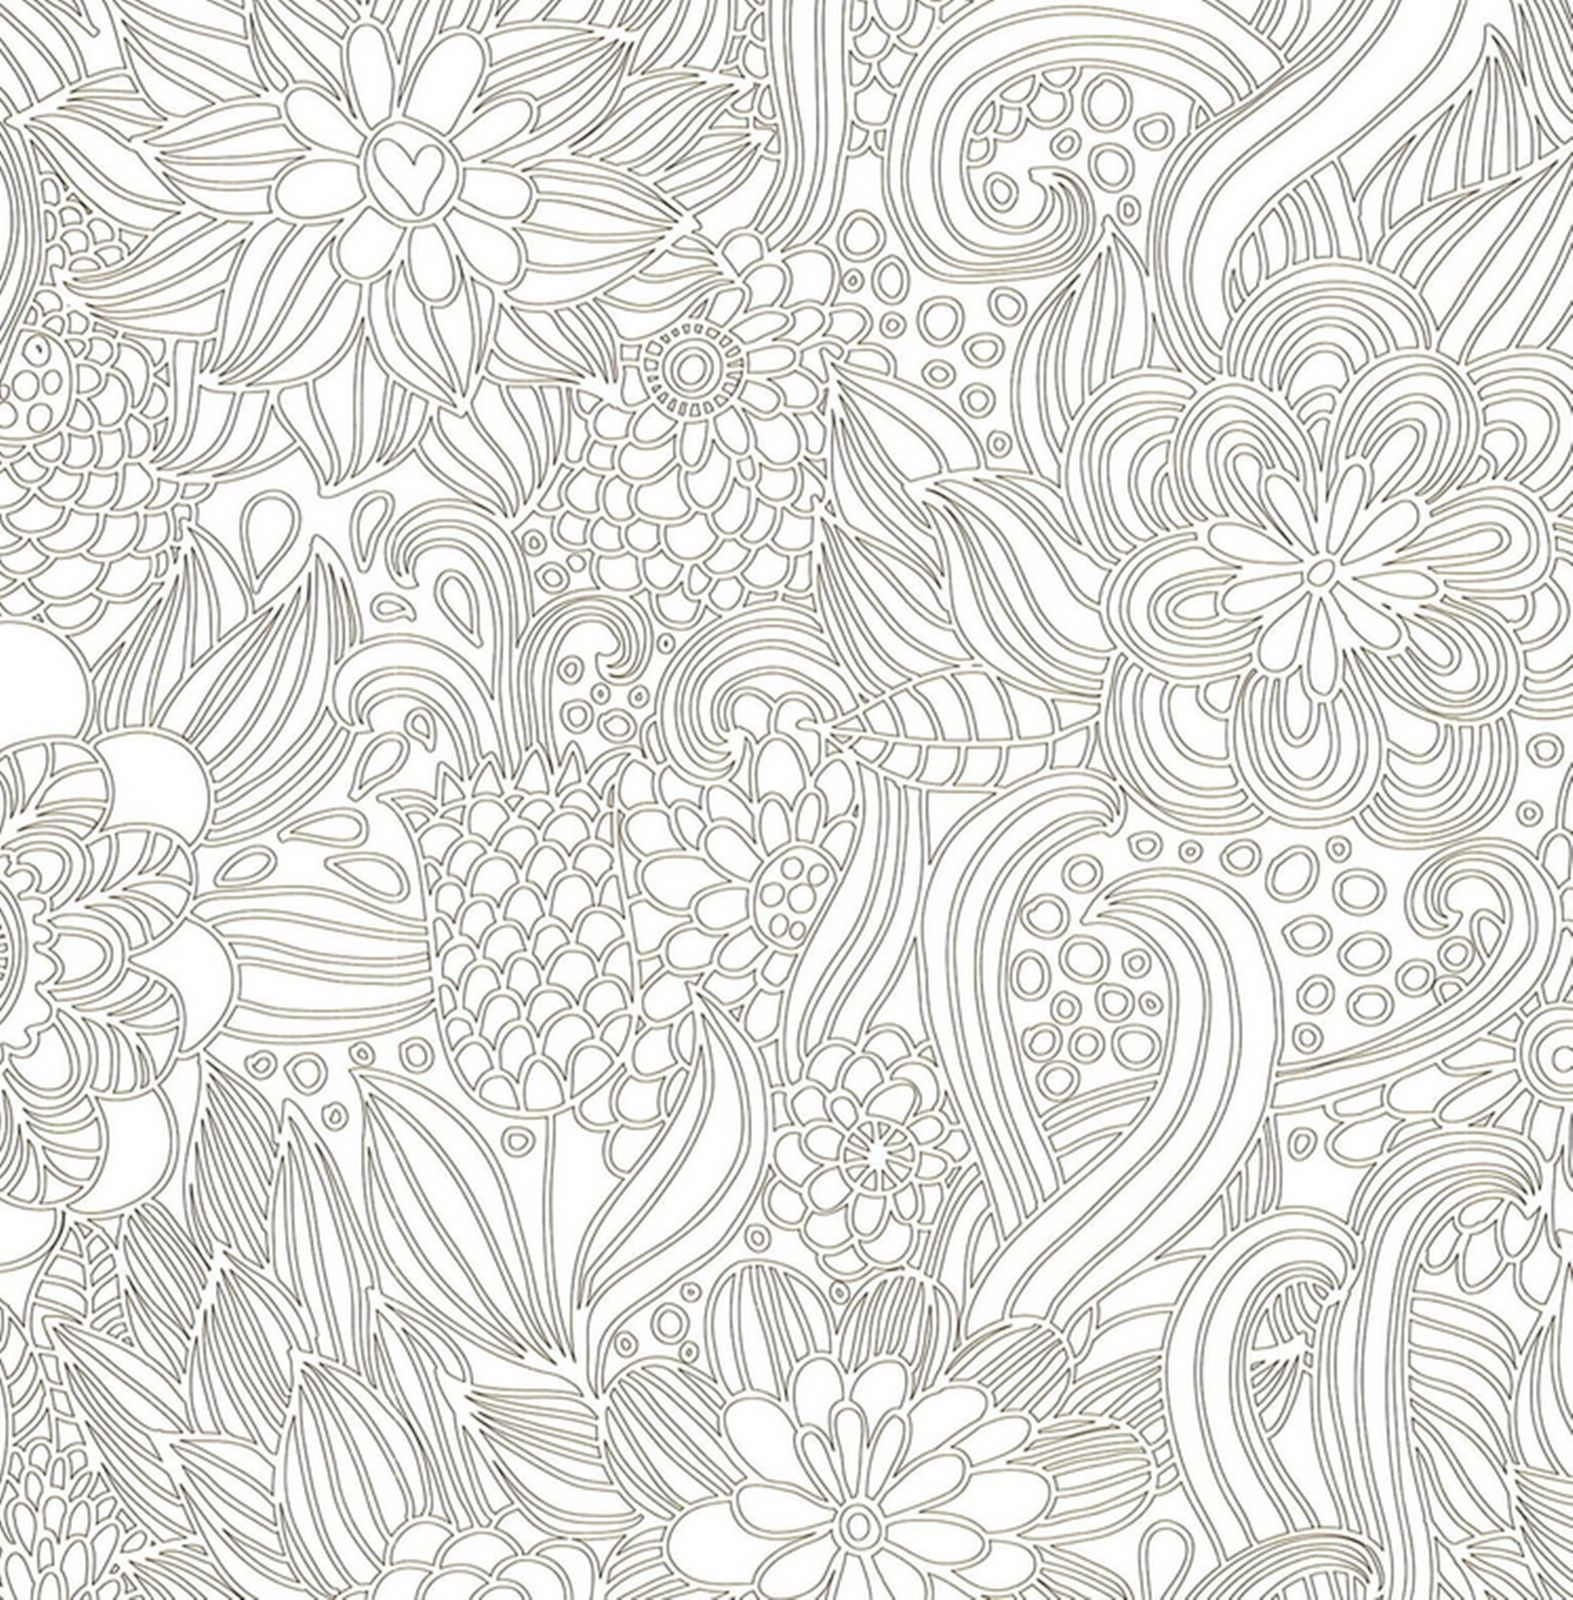 Flower coloring book for adults gift anti stress art therapy fun